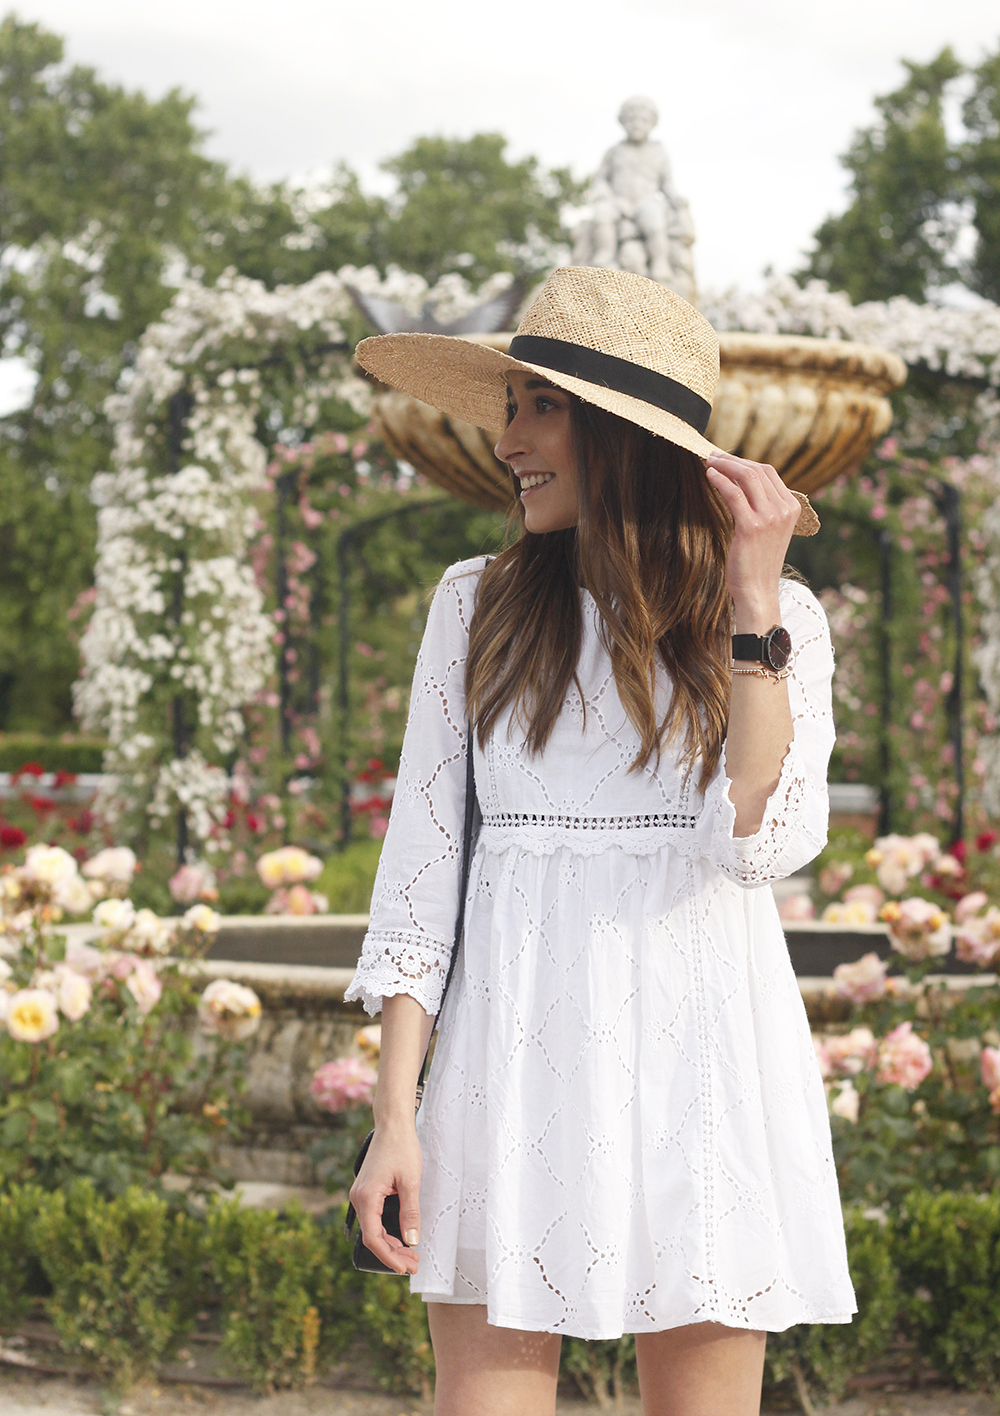 white summer dress givenchy bag street style outfit 2018 el retiro17